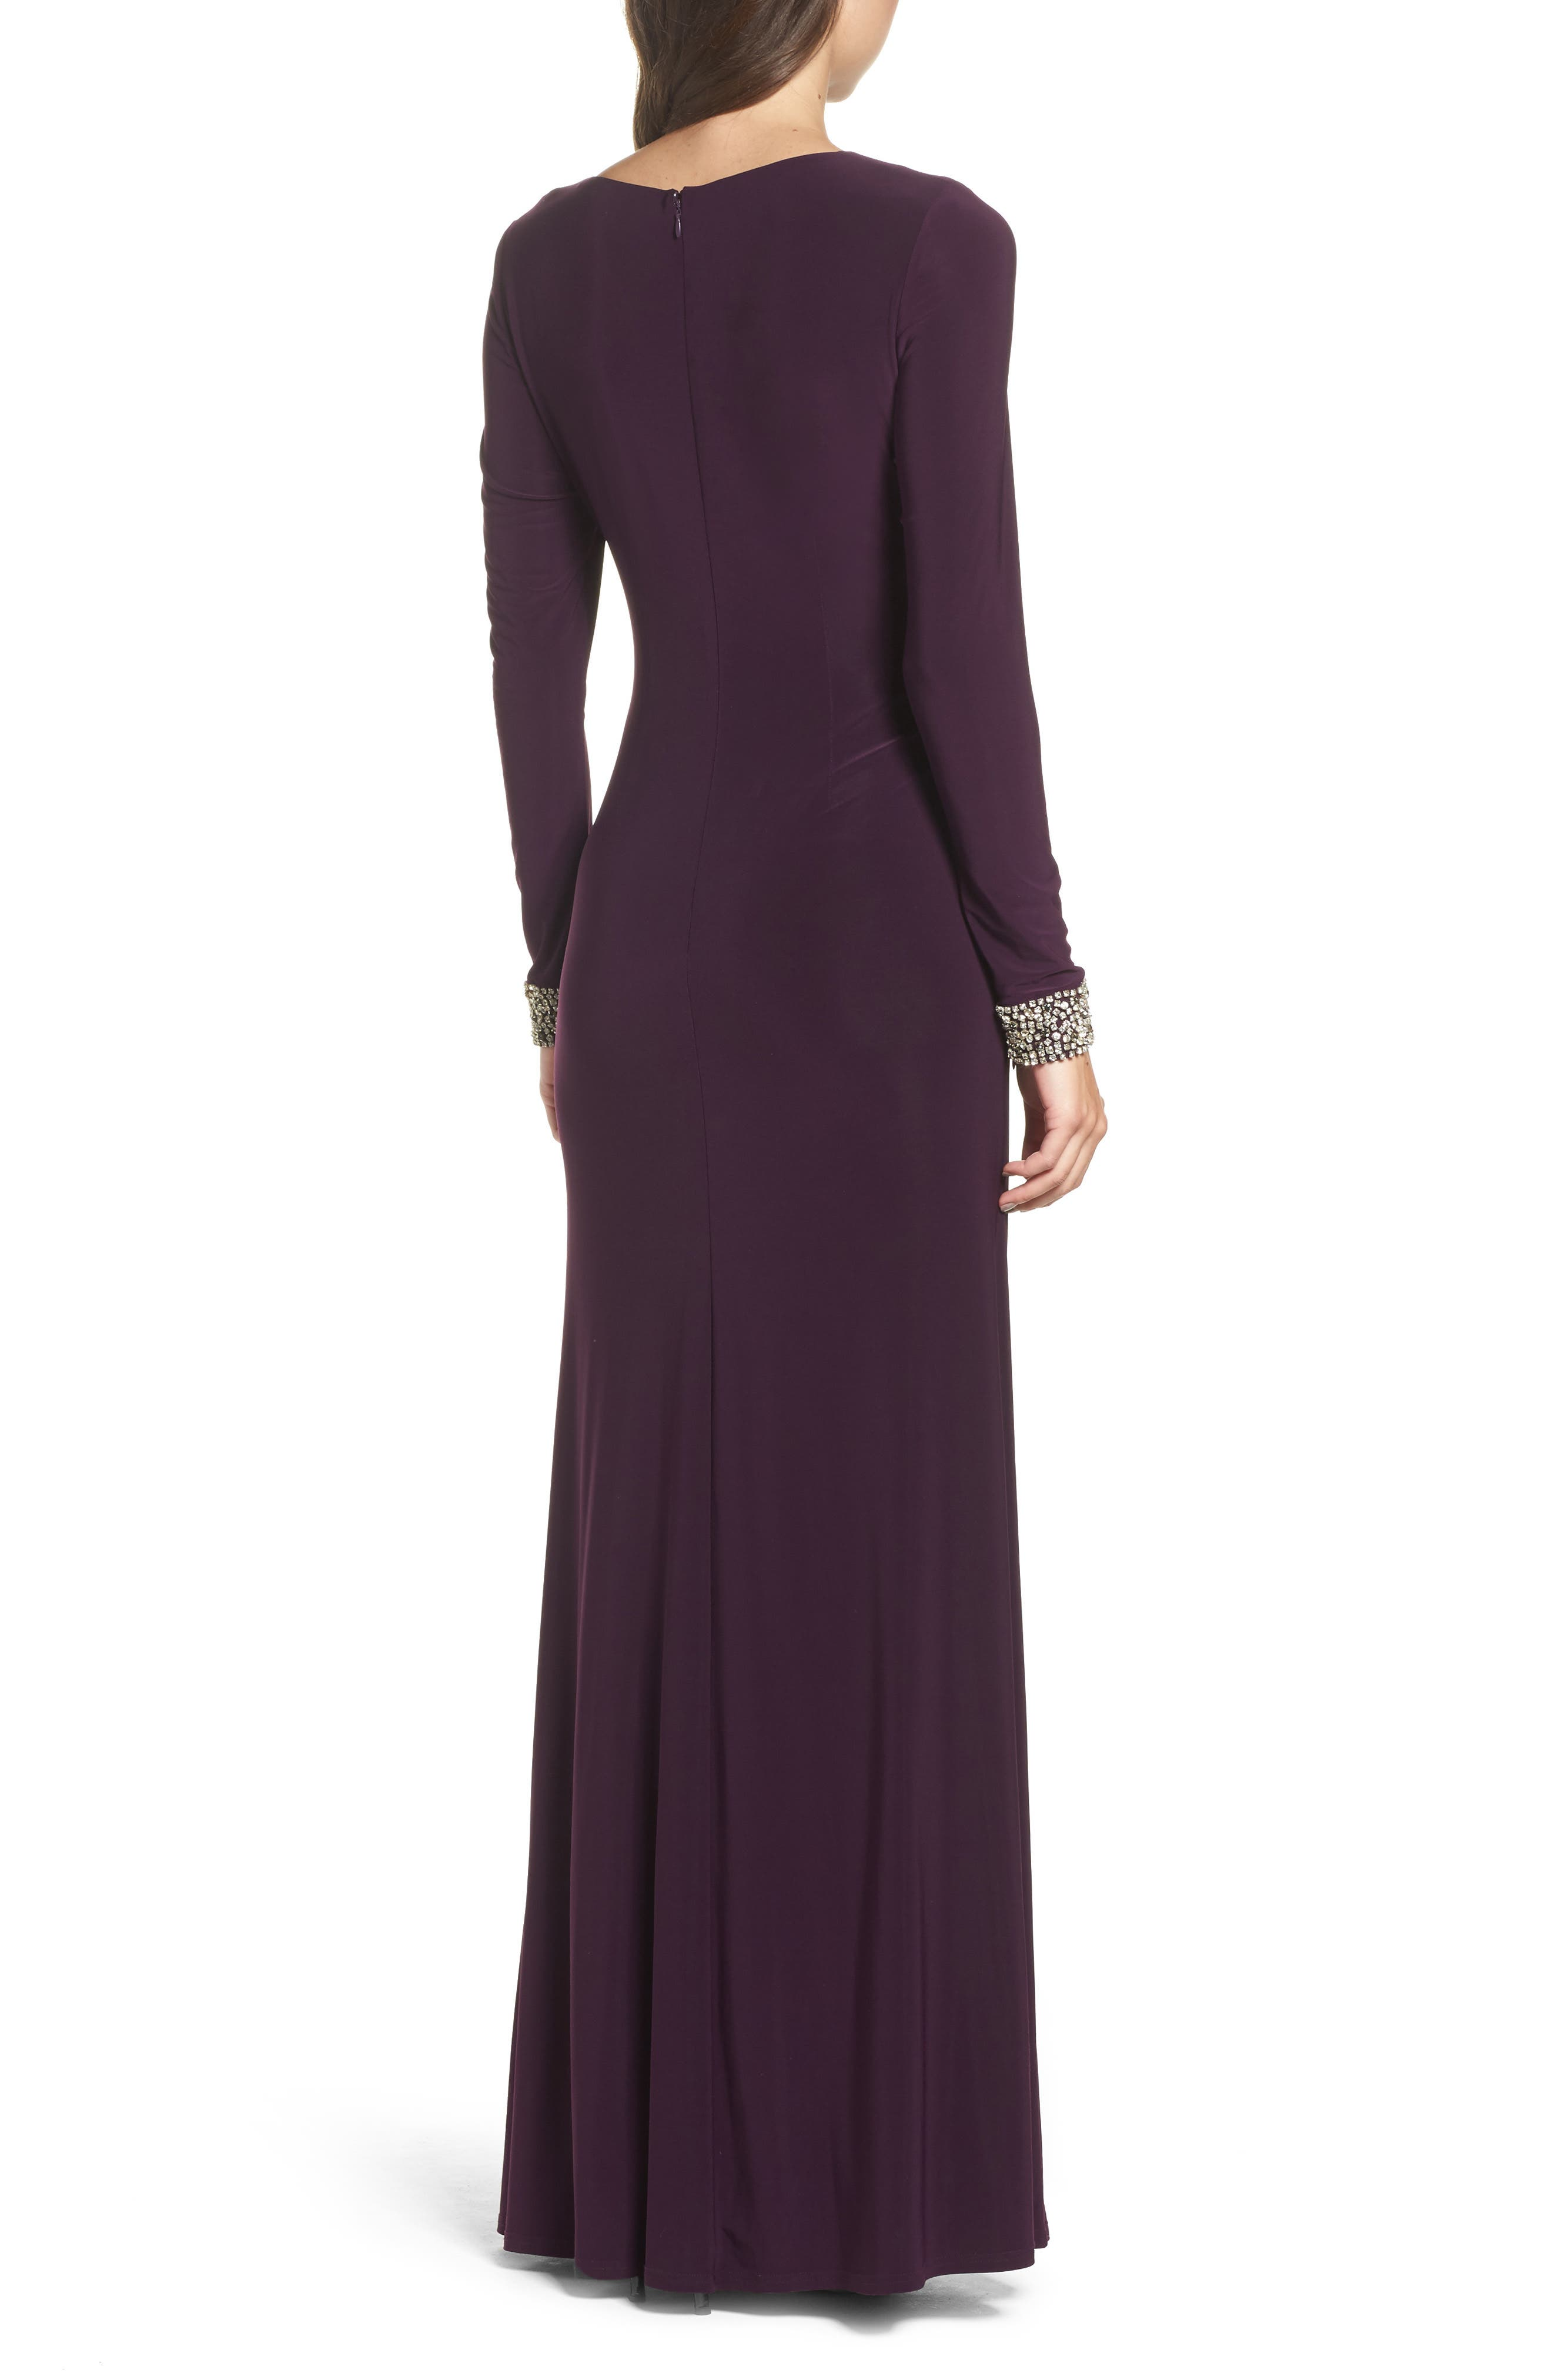 VINCE CAMUTO, Beaded Cuff Ruched Jersey Gown, Alternate thumbnail 2, color, 505